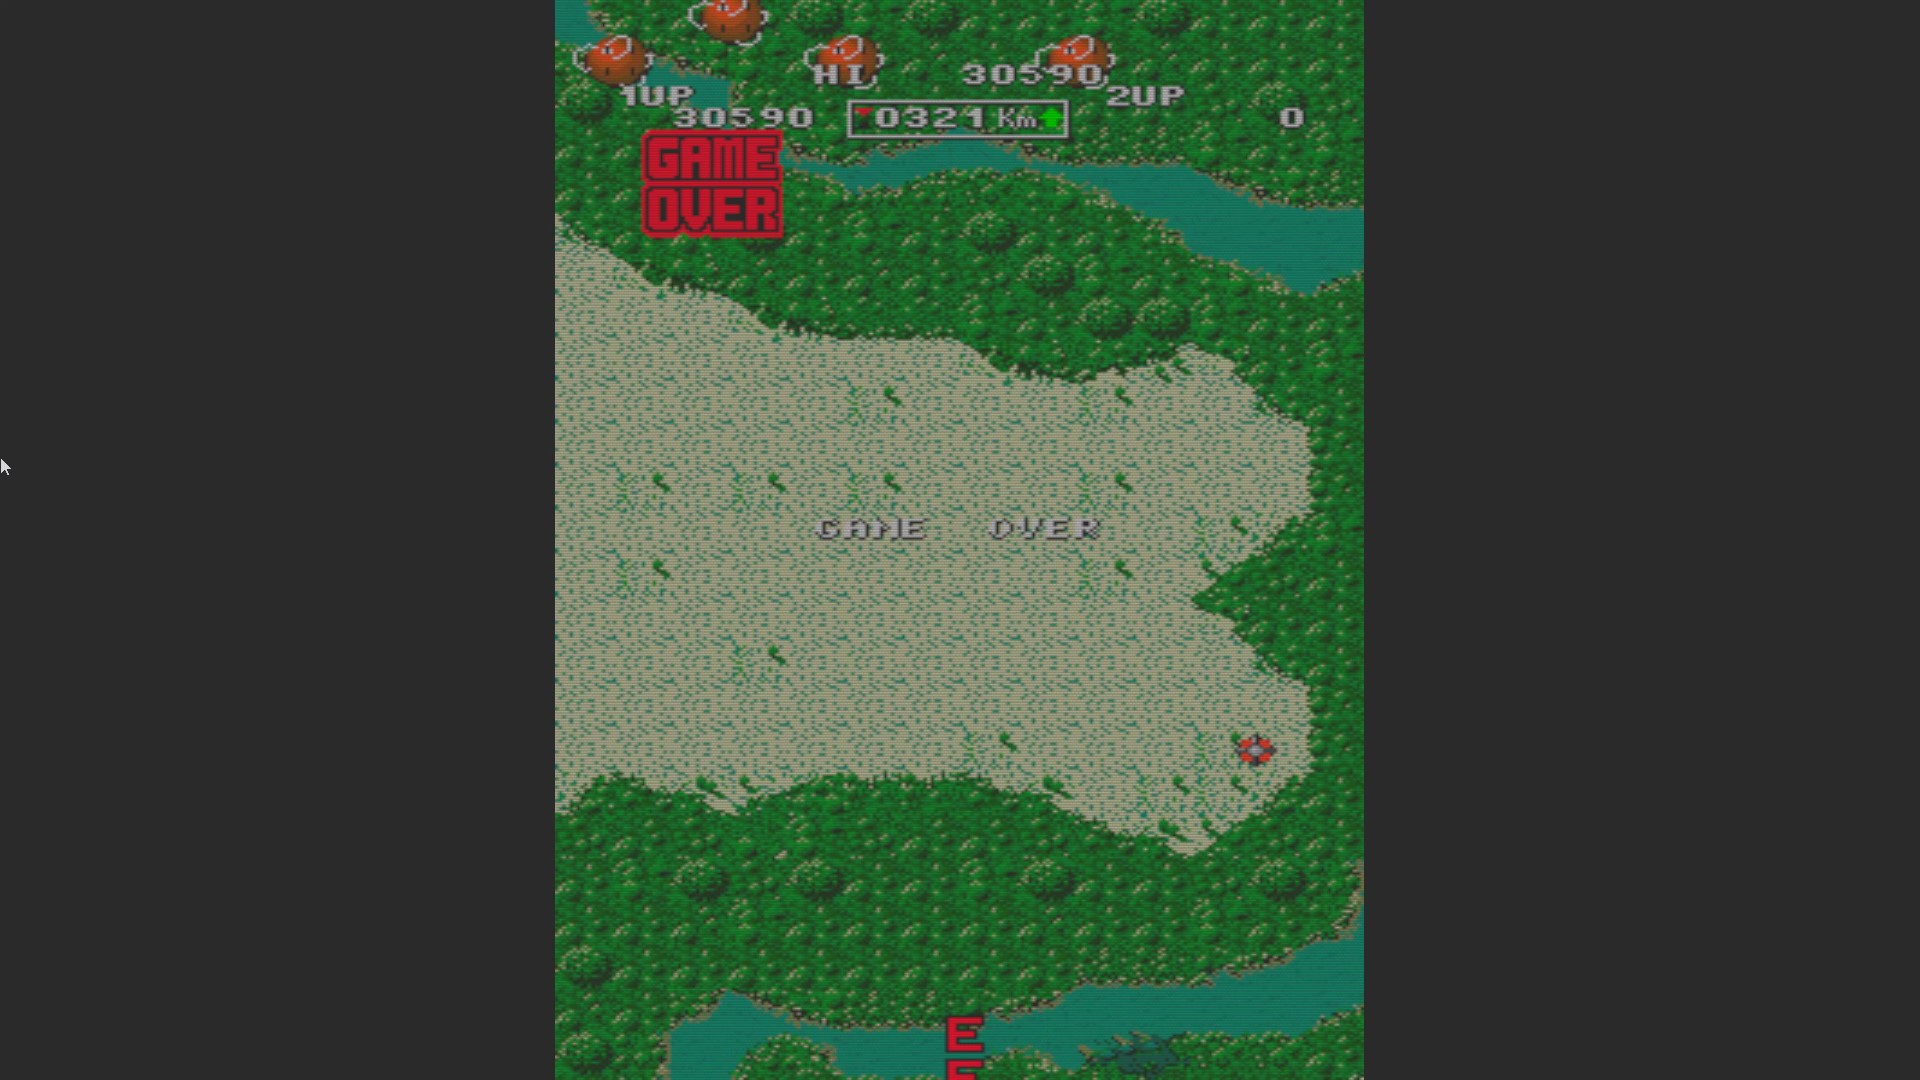 SNK 40th Anniversary Collection: Bermuda Triangle 30,590 points